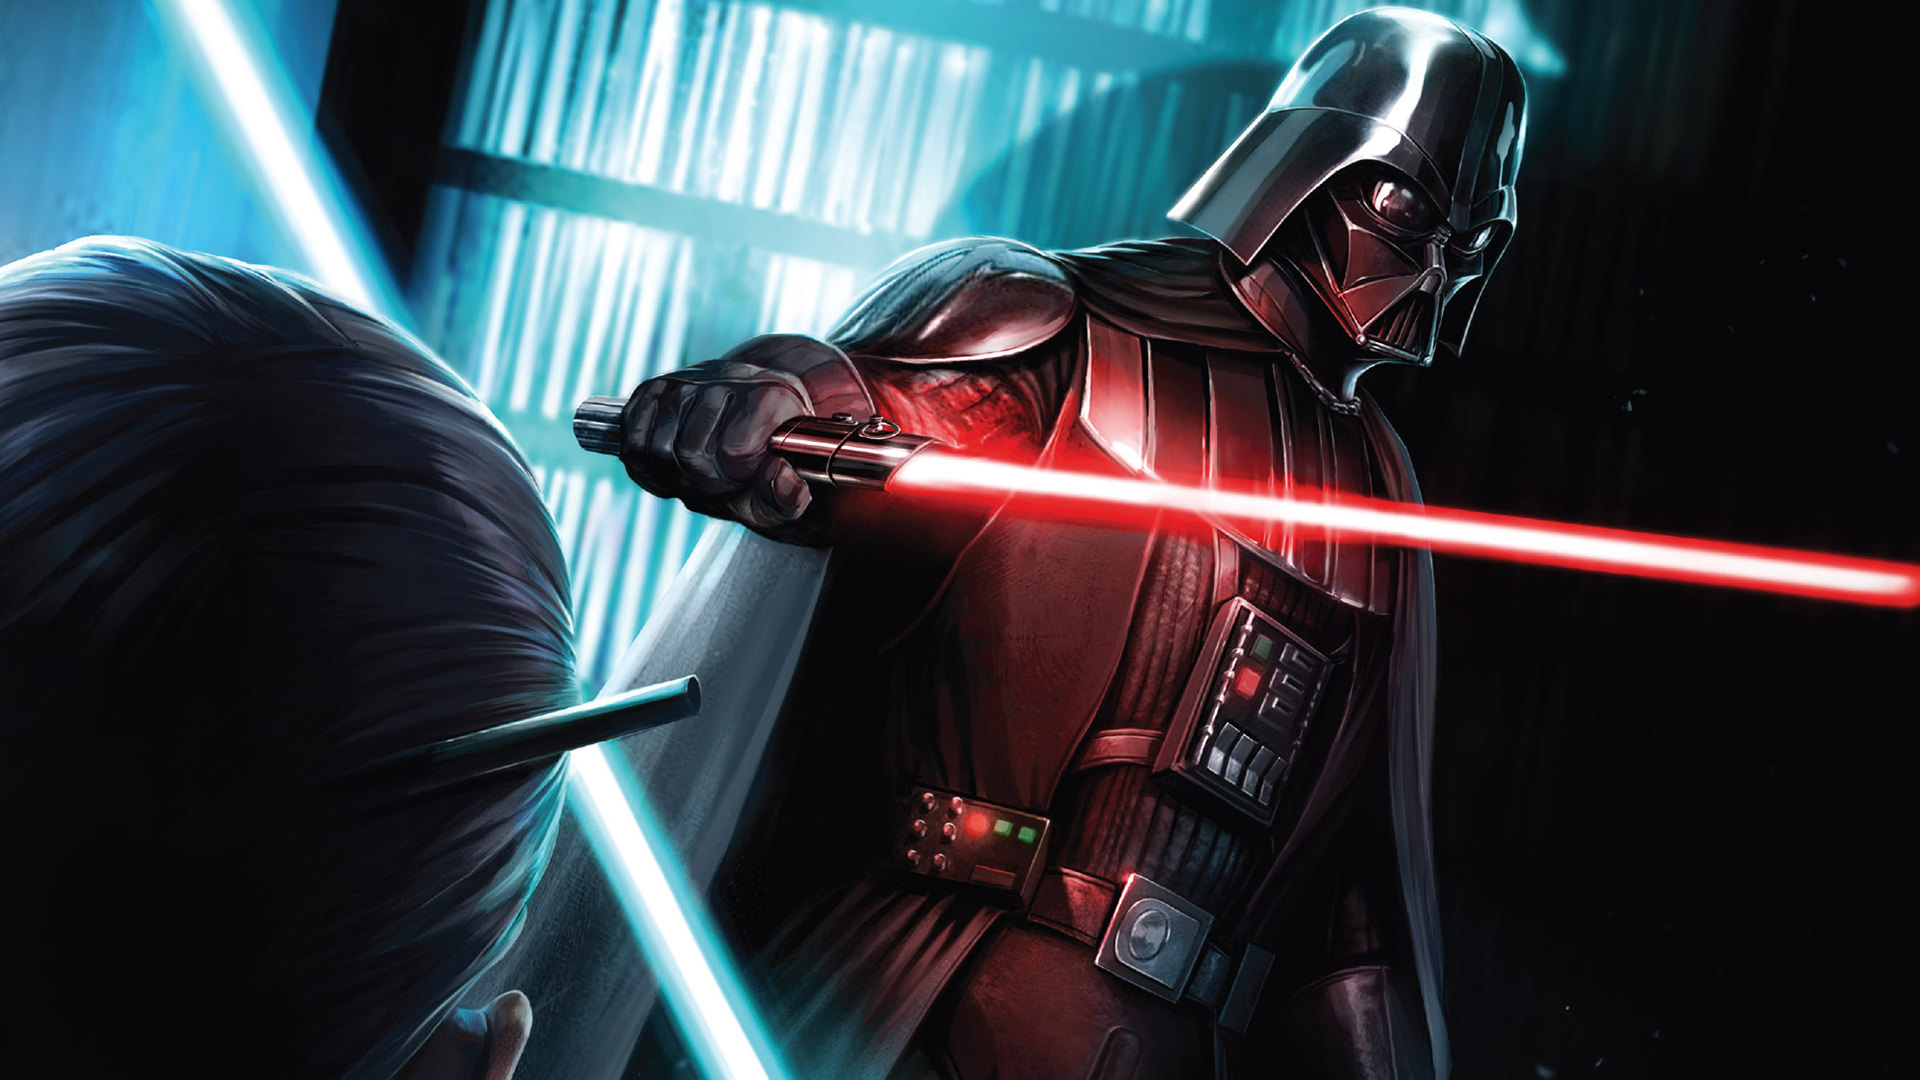 Darth Vader Wallpaper For Android Posted By John Sellers